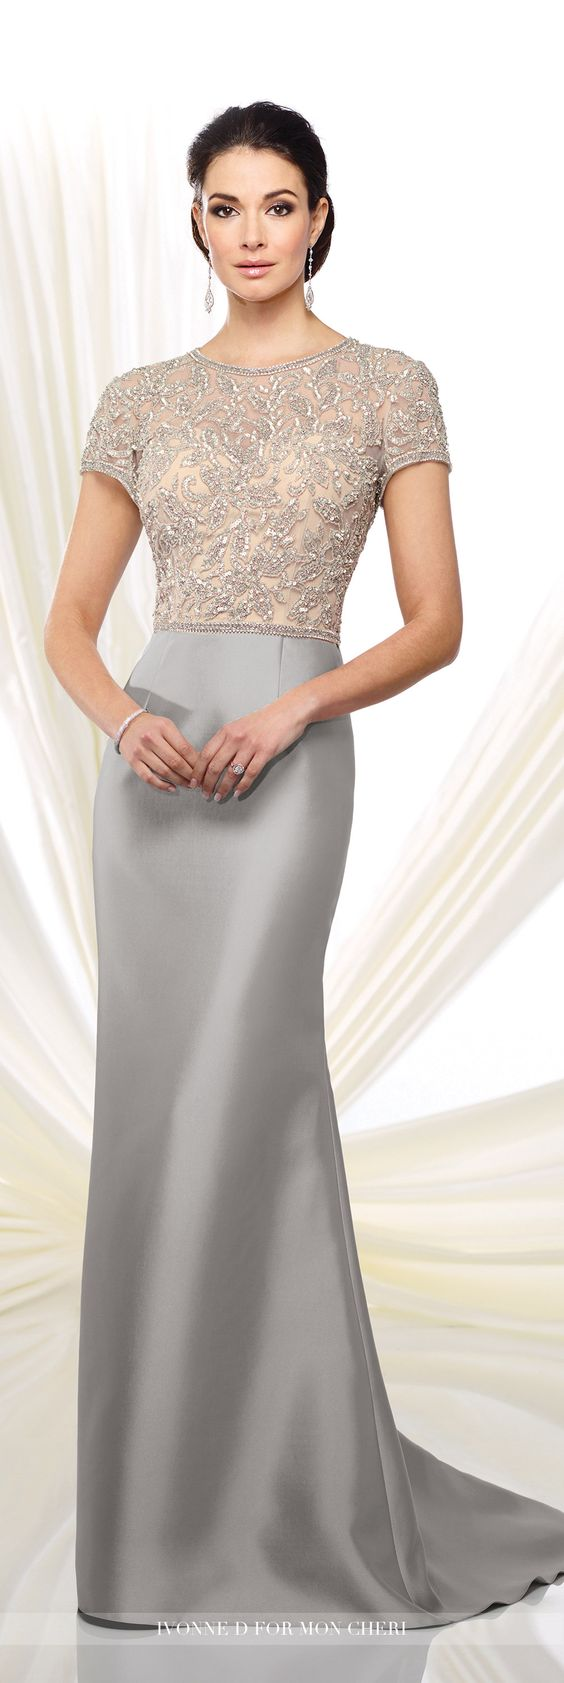 Formal Evening Gowns by Mon Cheri - Fall 2016 - Style No. 216D45 - short sleeved silver evening gown with hand-beaded illusion top and mikado skirt